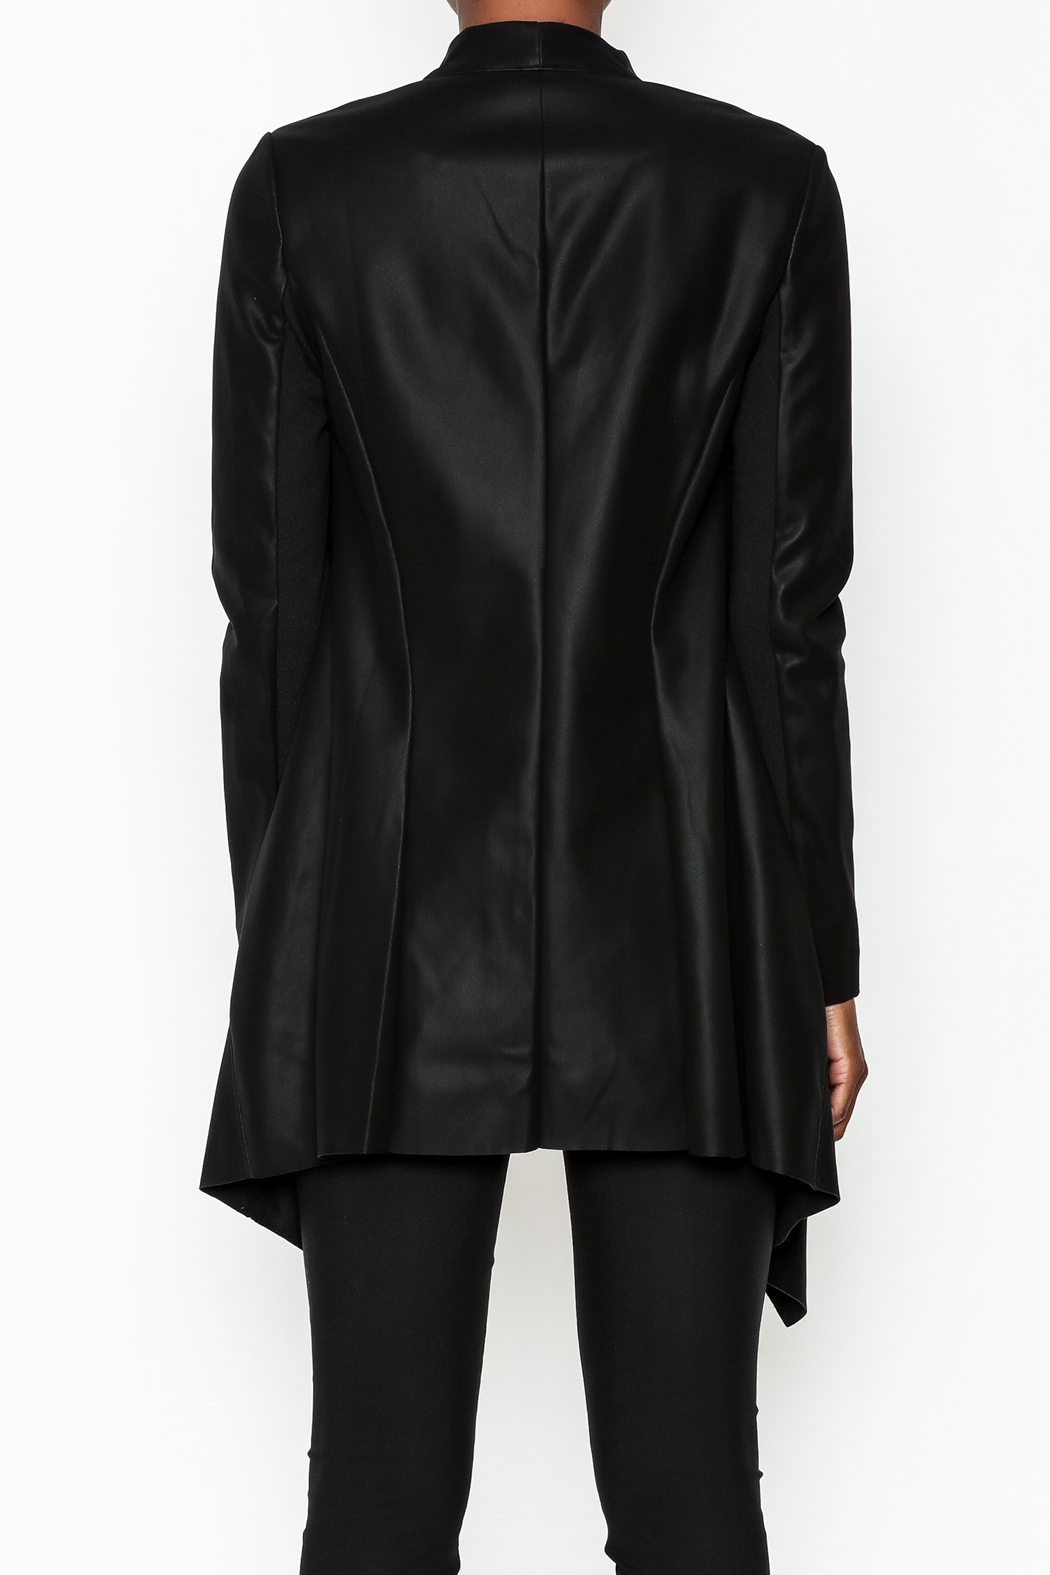 WREN & WILLA Faux Leather Open Cardigan - Back Cropped Image